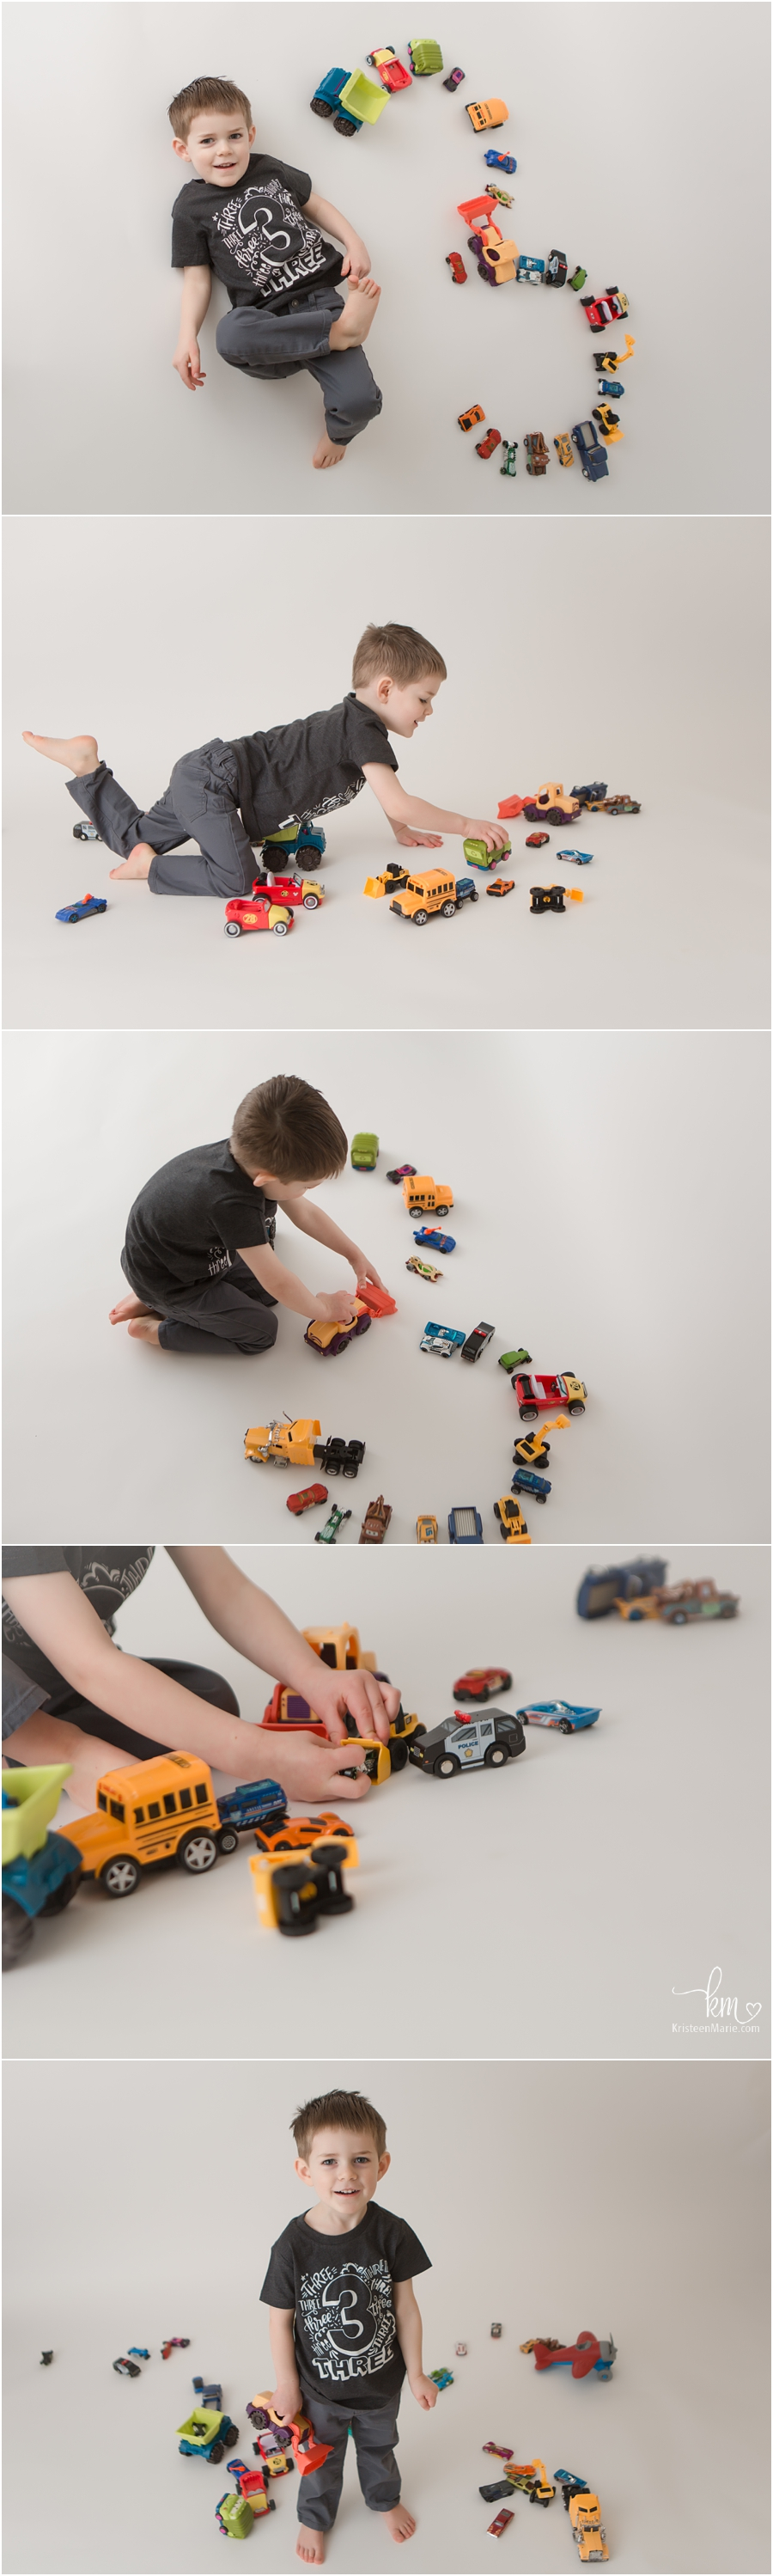 Three year old boy pictures - car themed